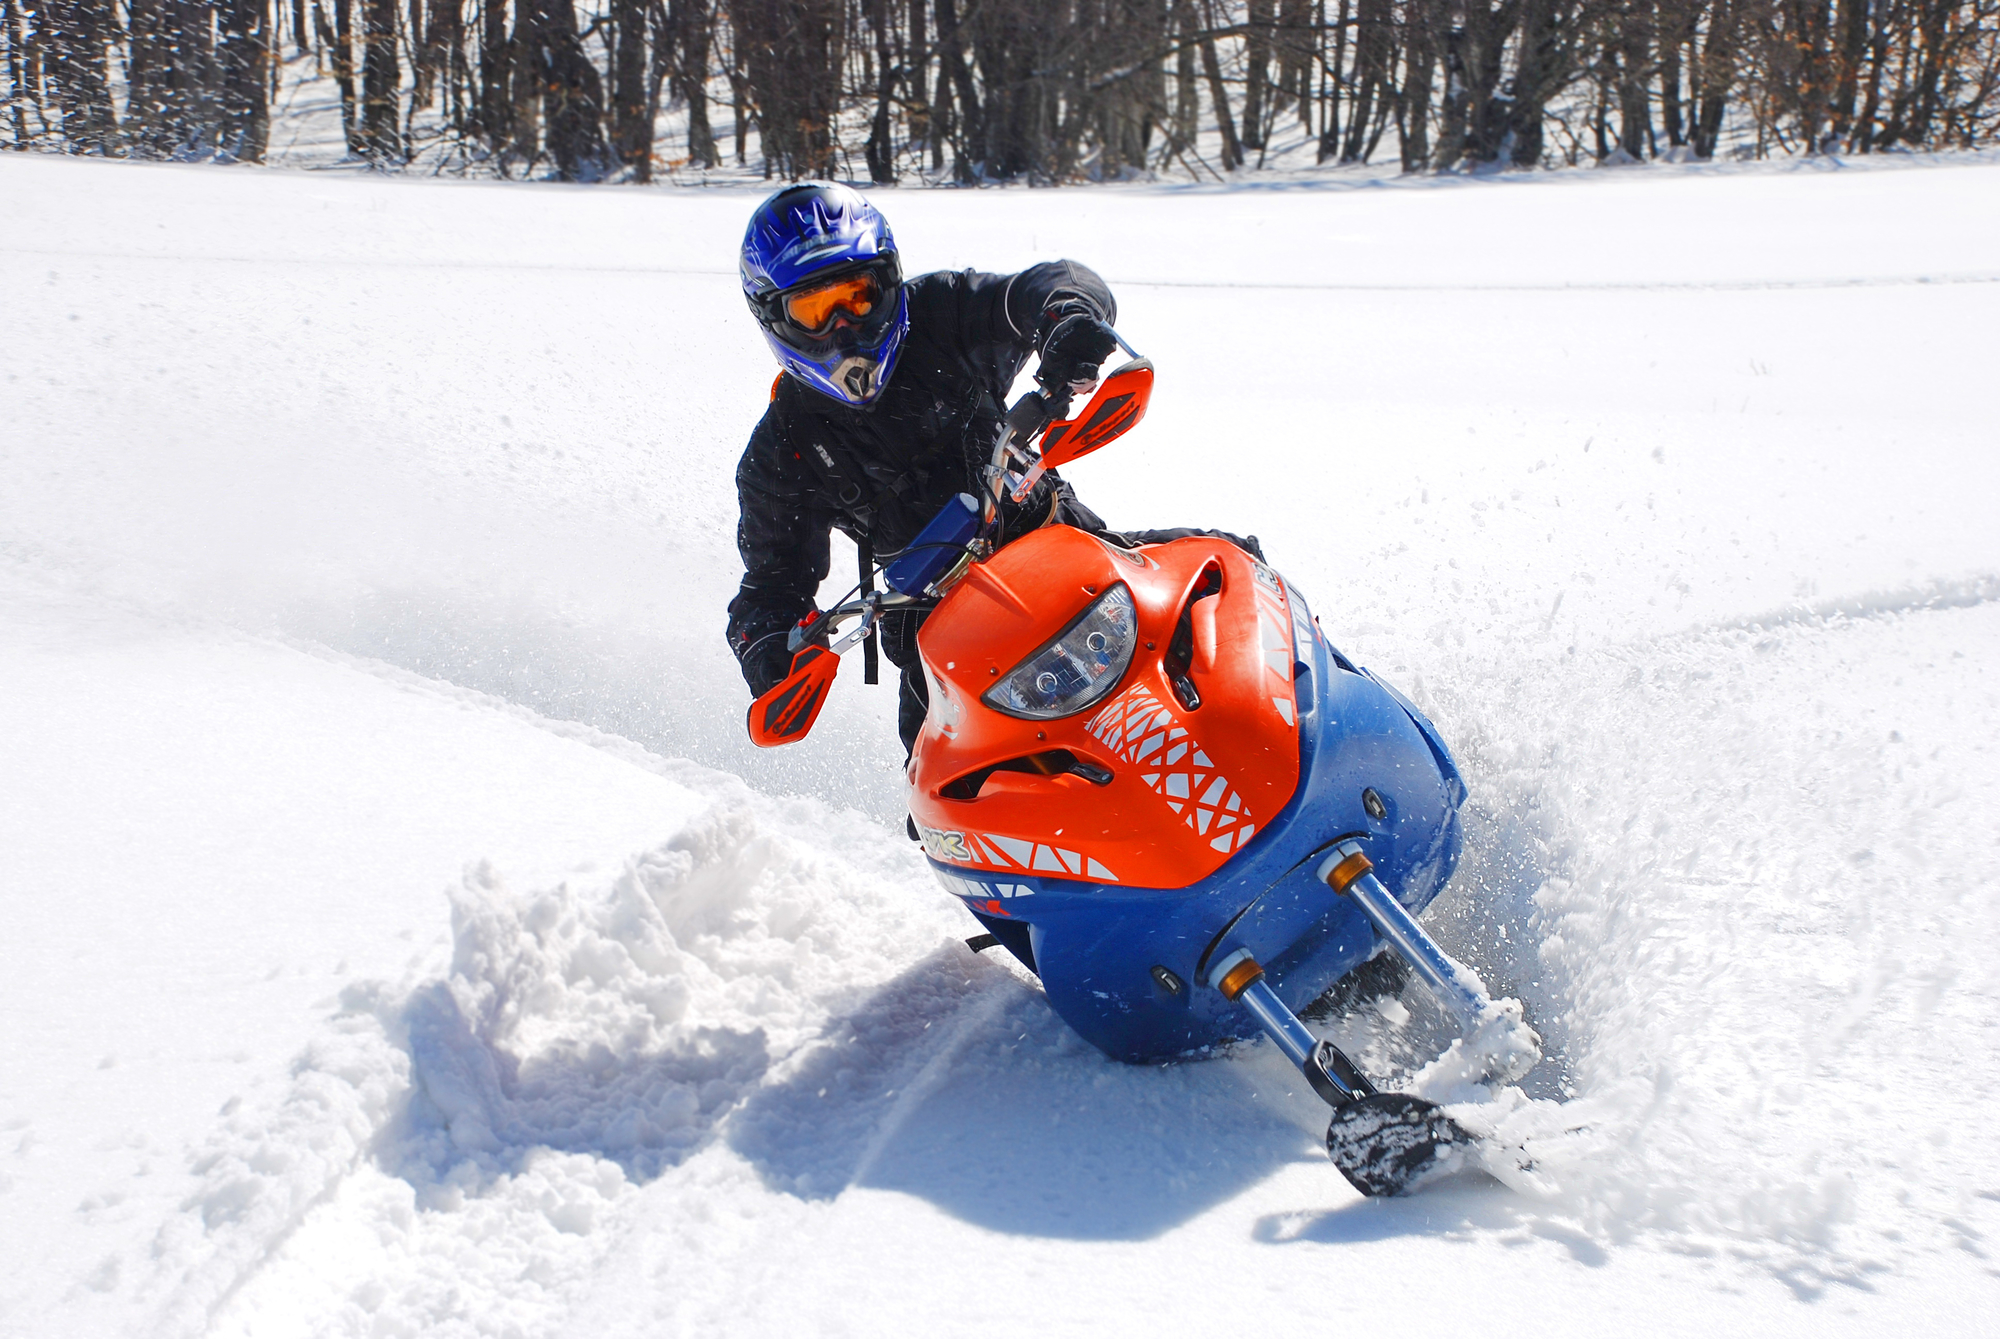 Used Snowmobile